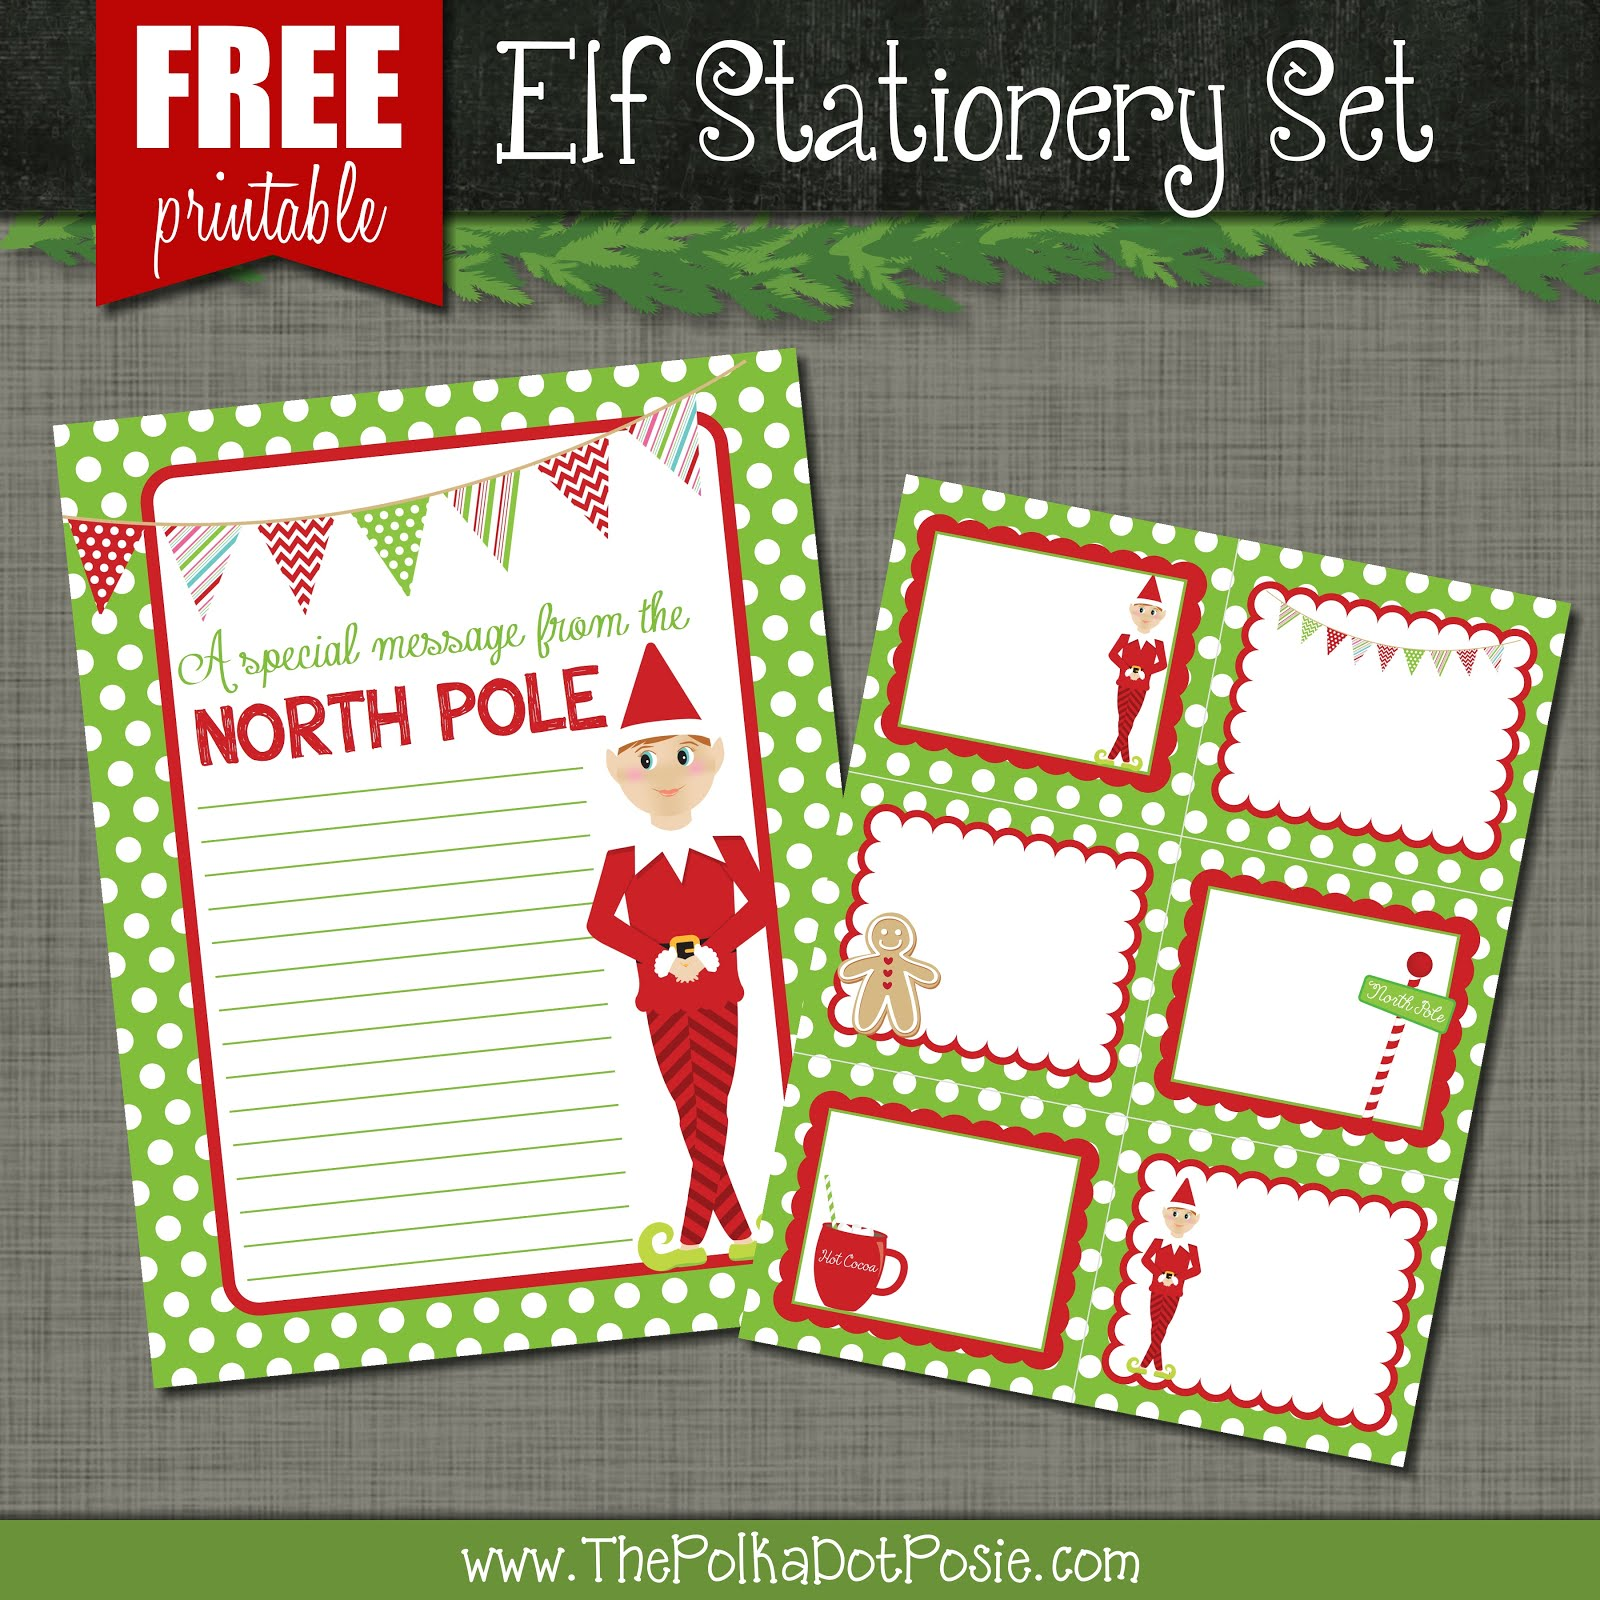 Download our Elf Stationery Set!